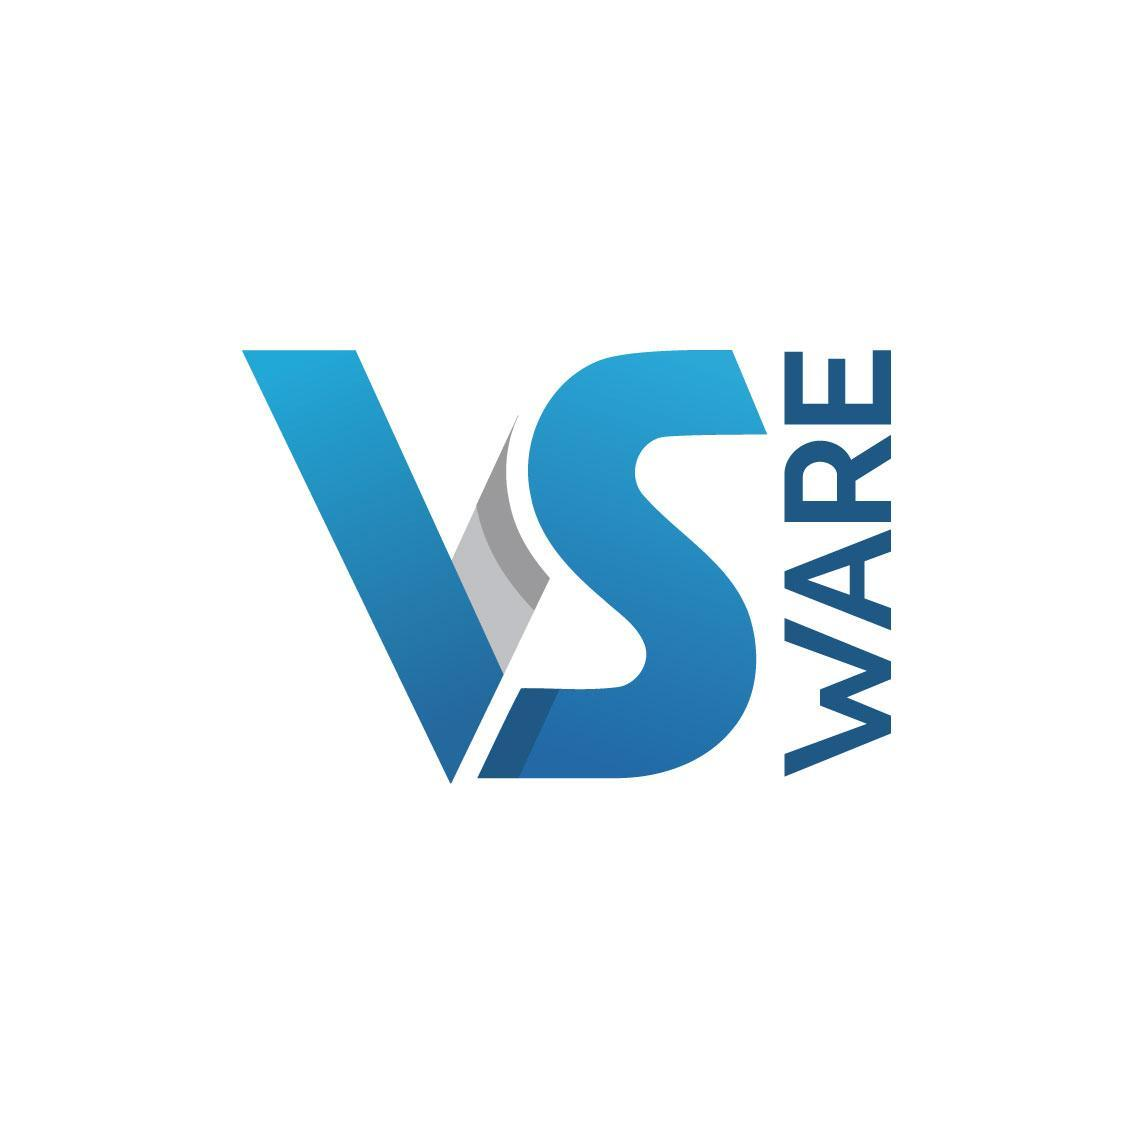 Day 1 - VSware Timetable Training - Athlone - March 6th